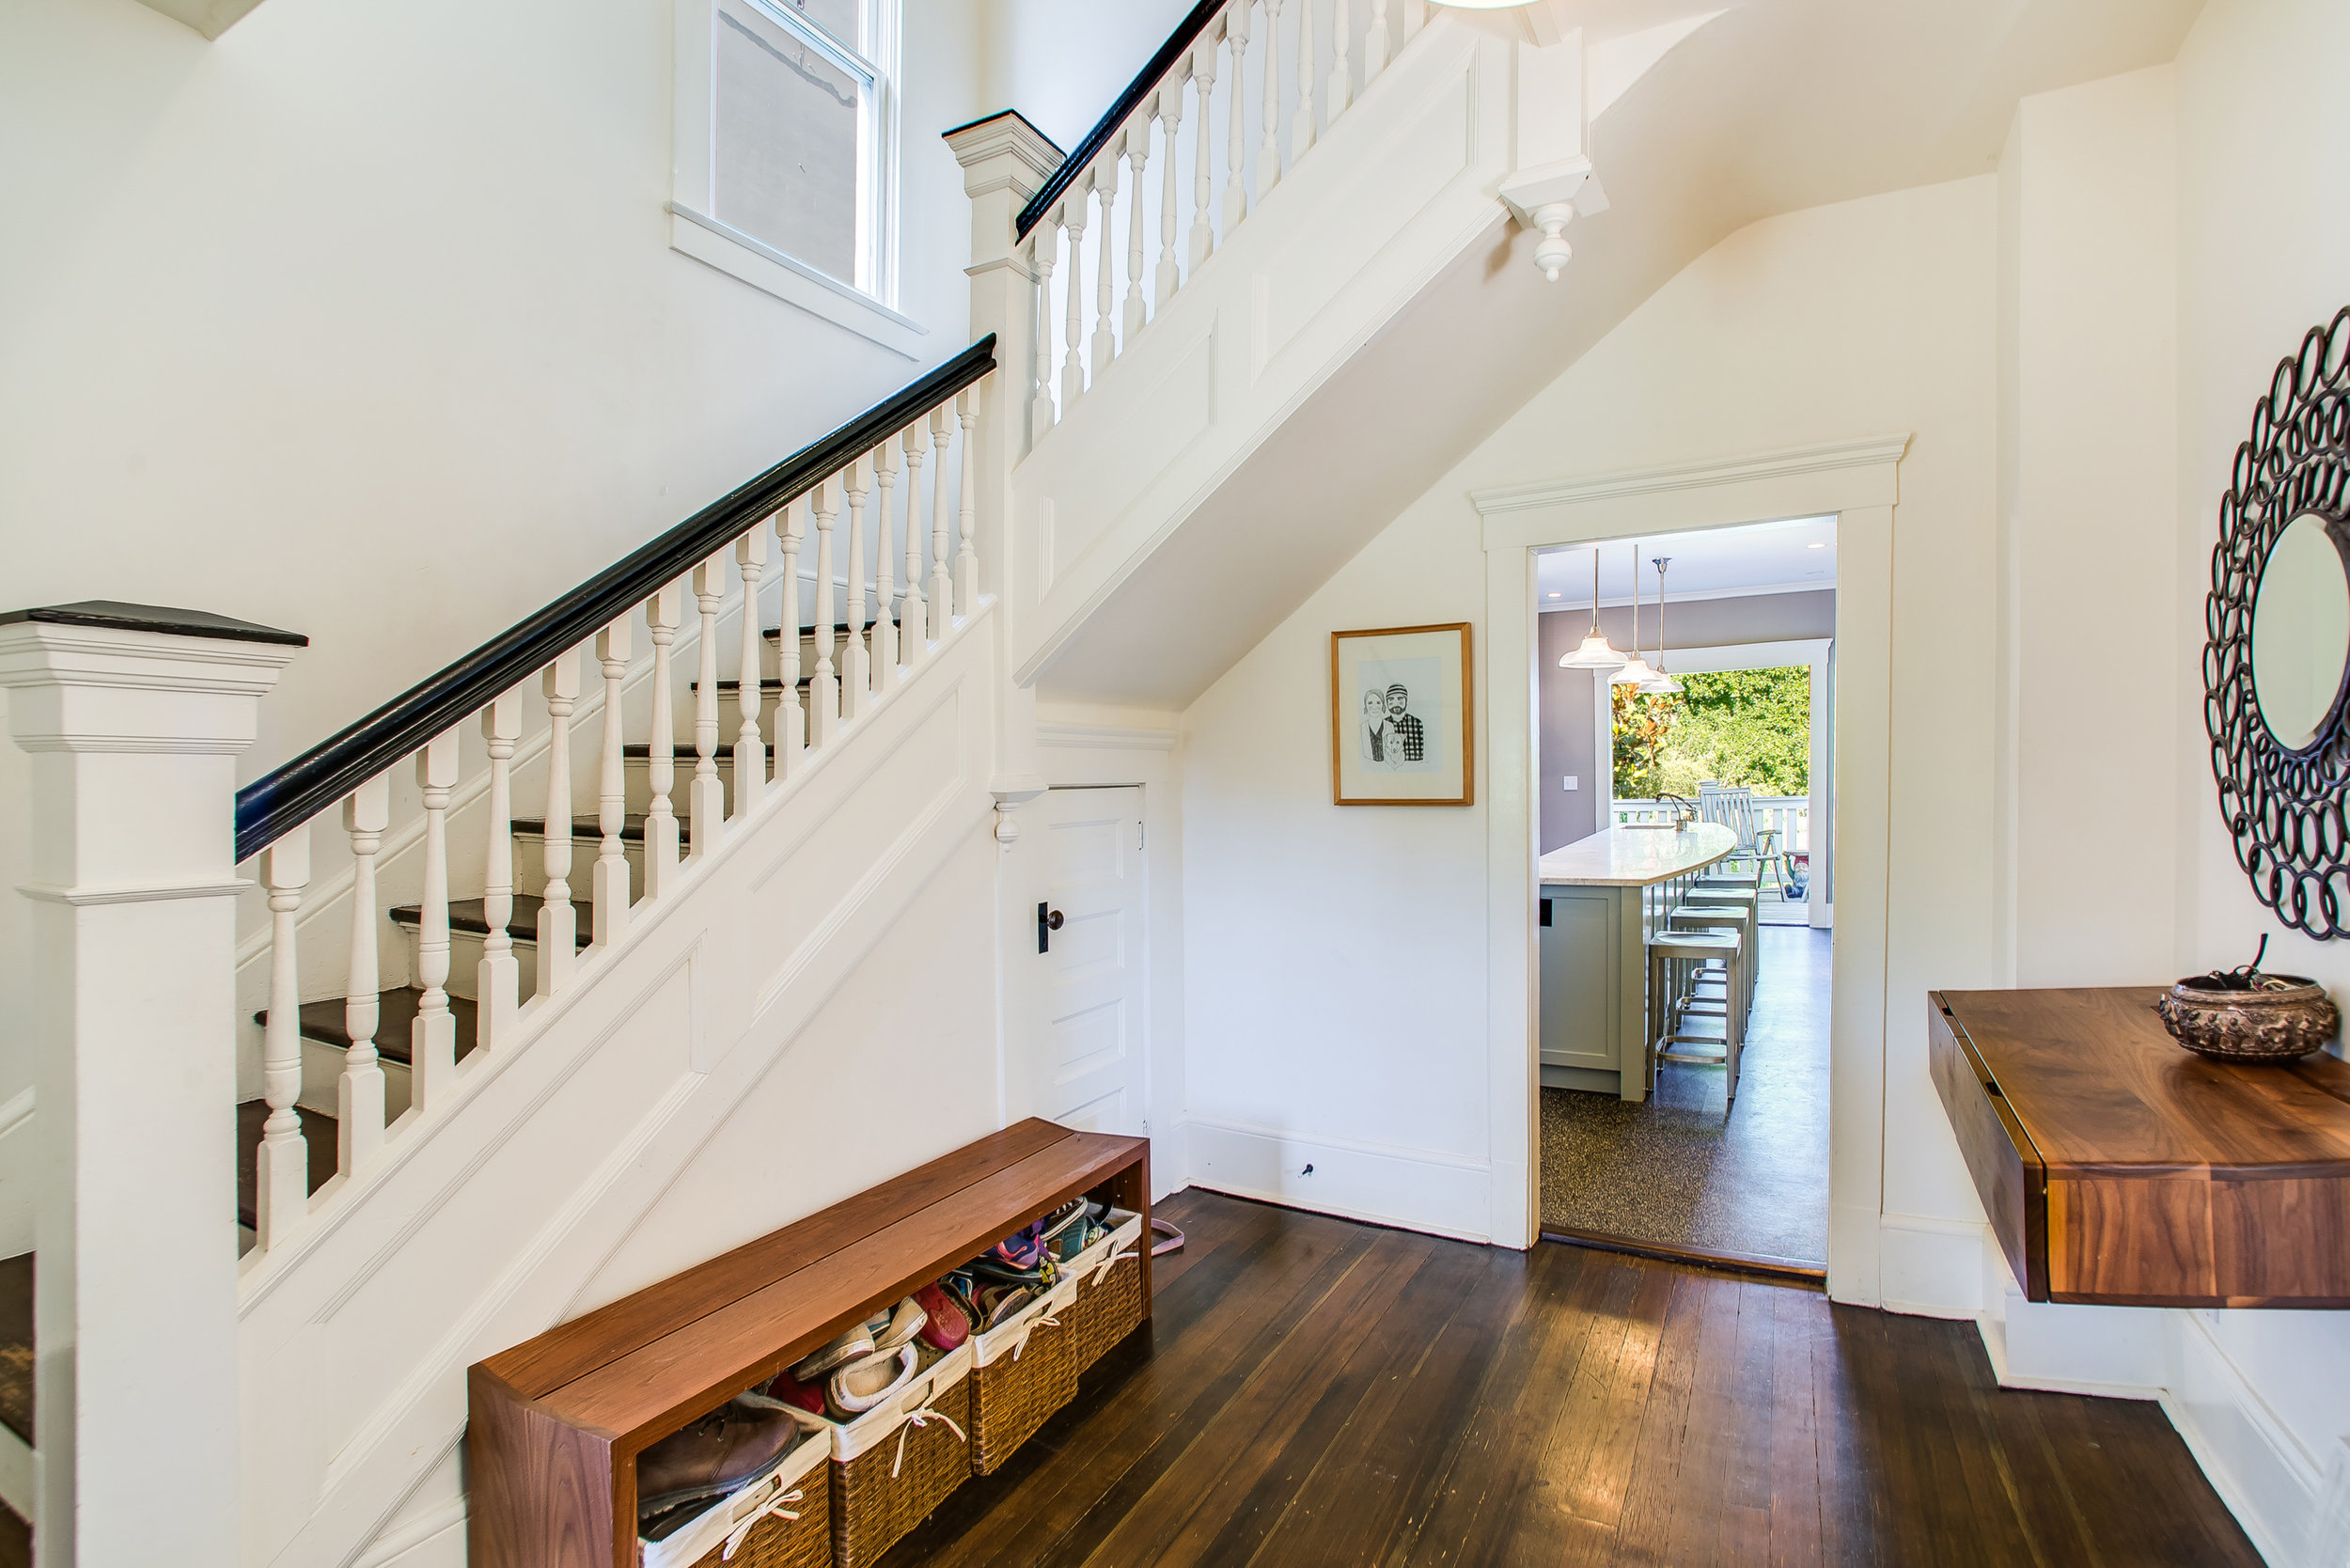 Set a good impression with buyers - Don't start out with lousy looking photos of a mess